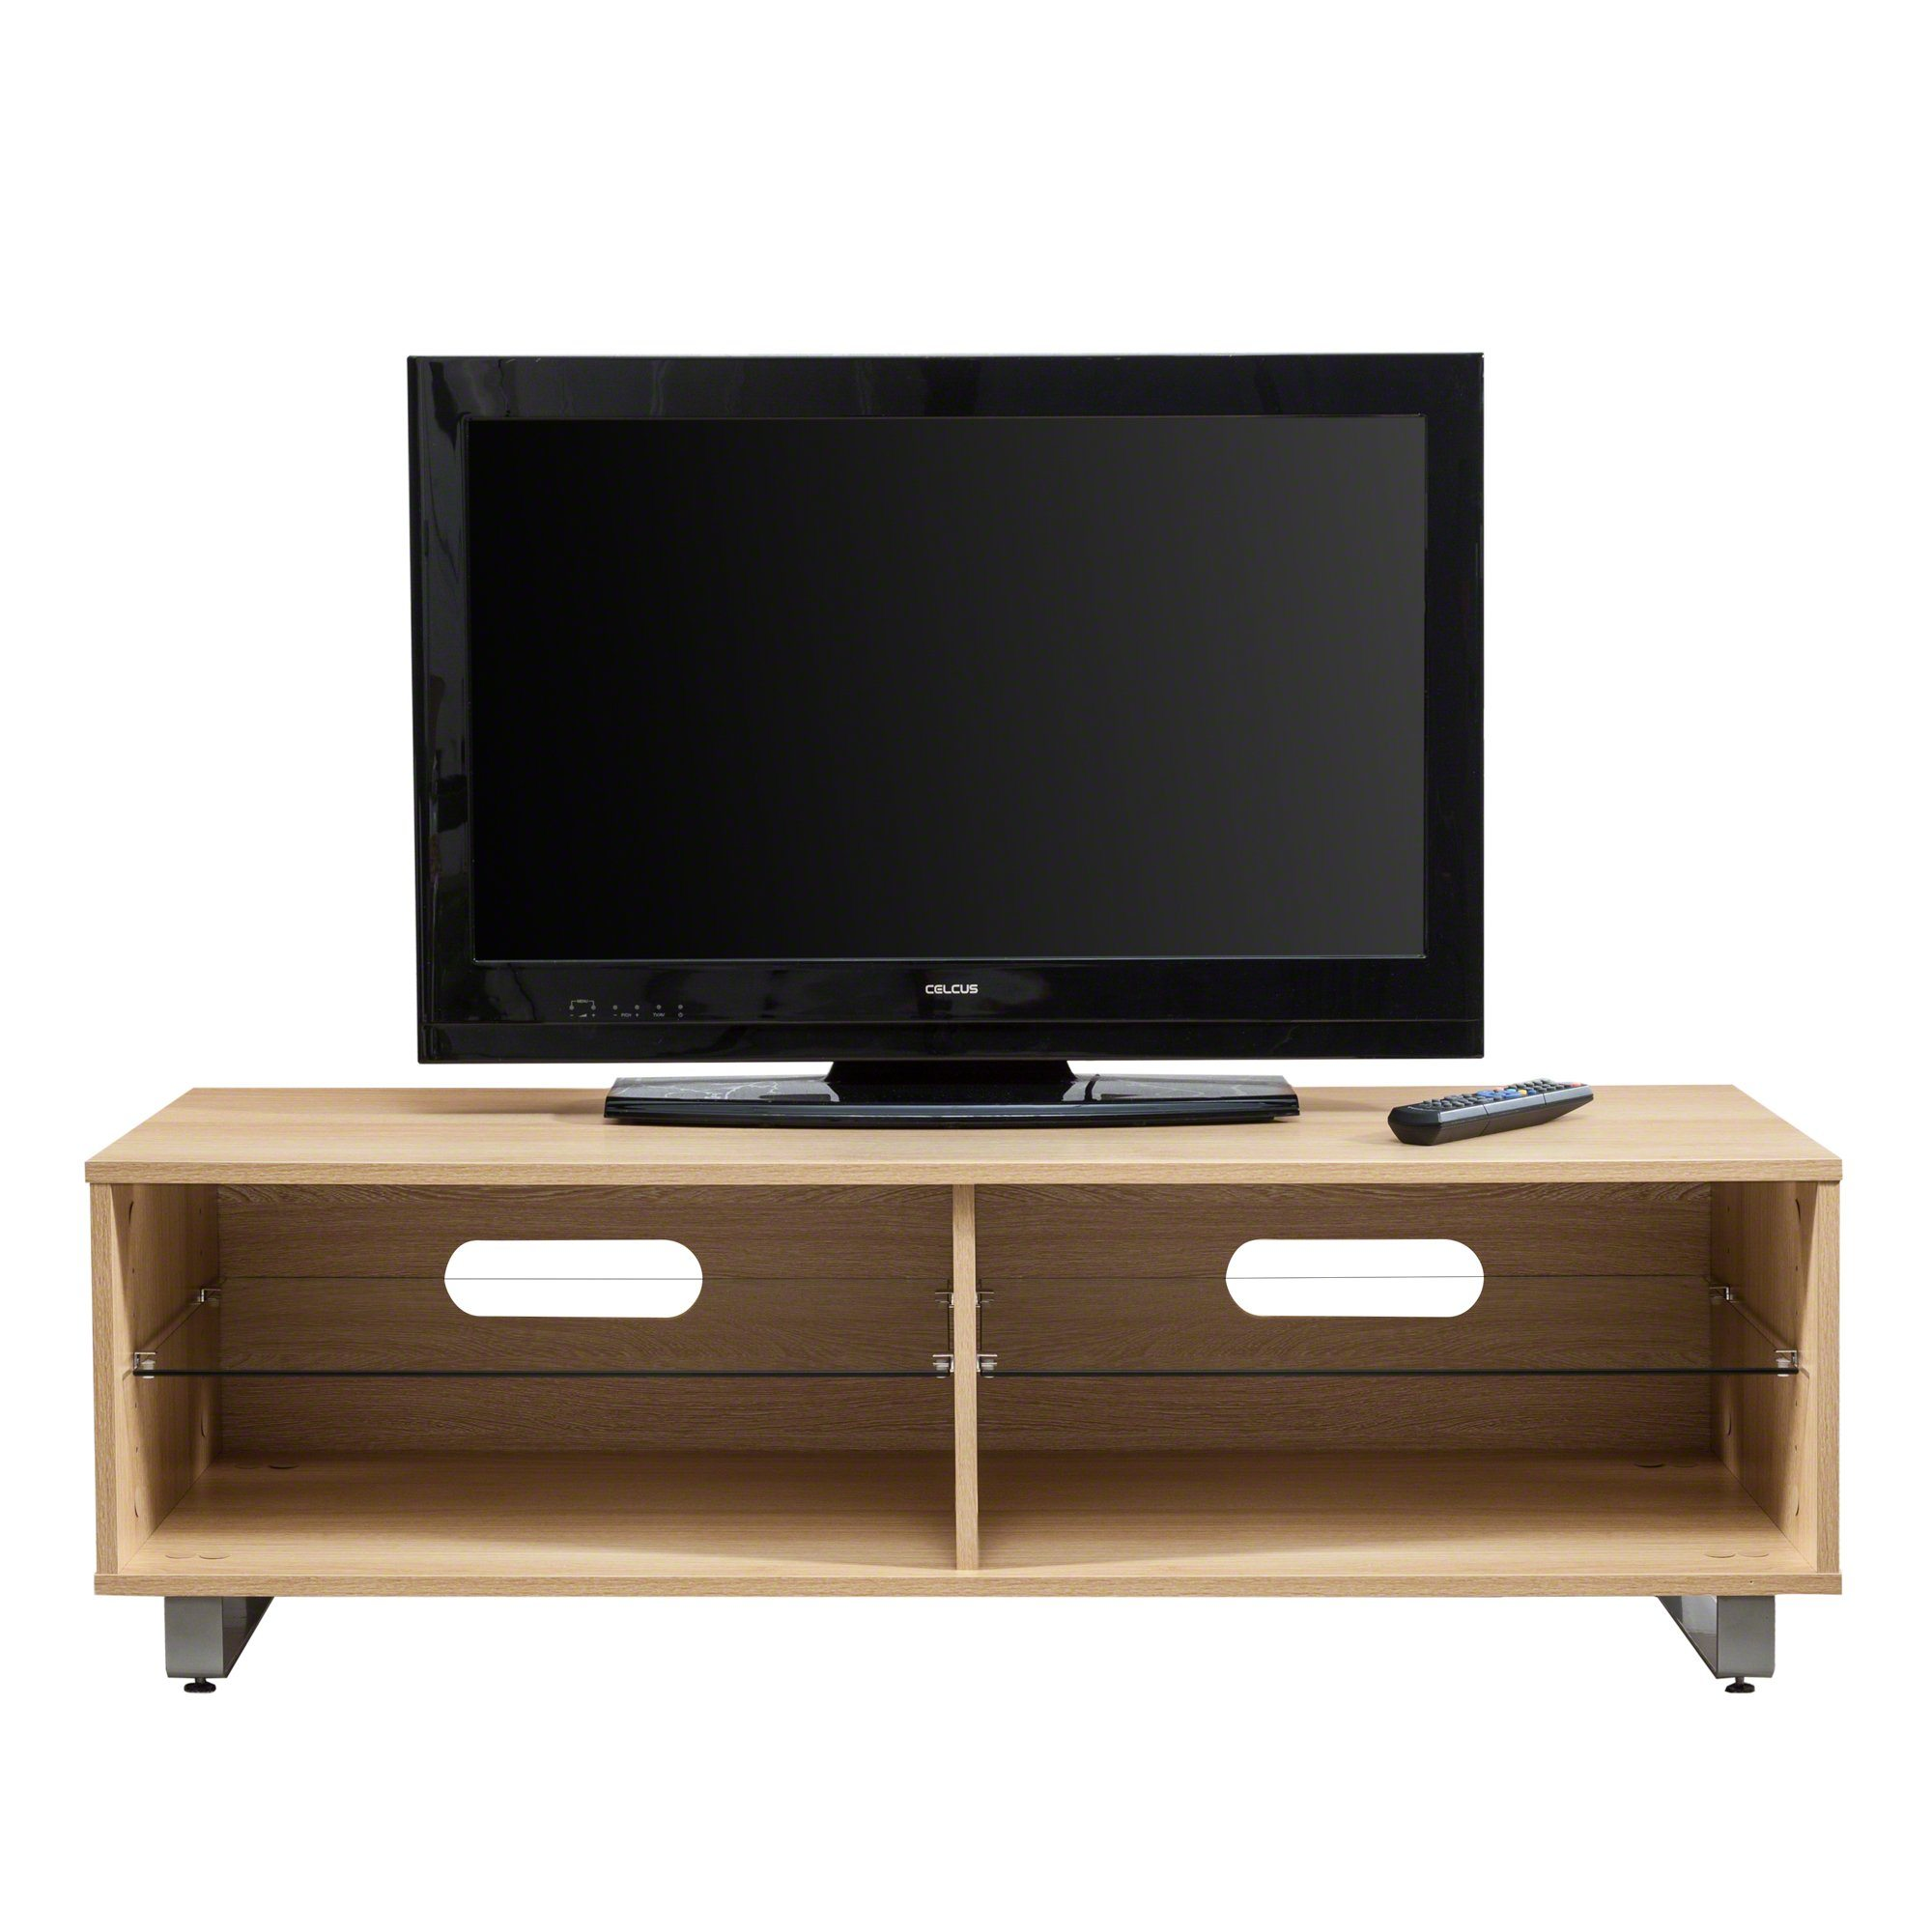 Oak TV Stand with Glass Shelf and Storage - Laura James